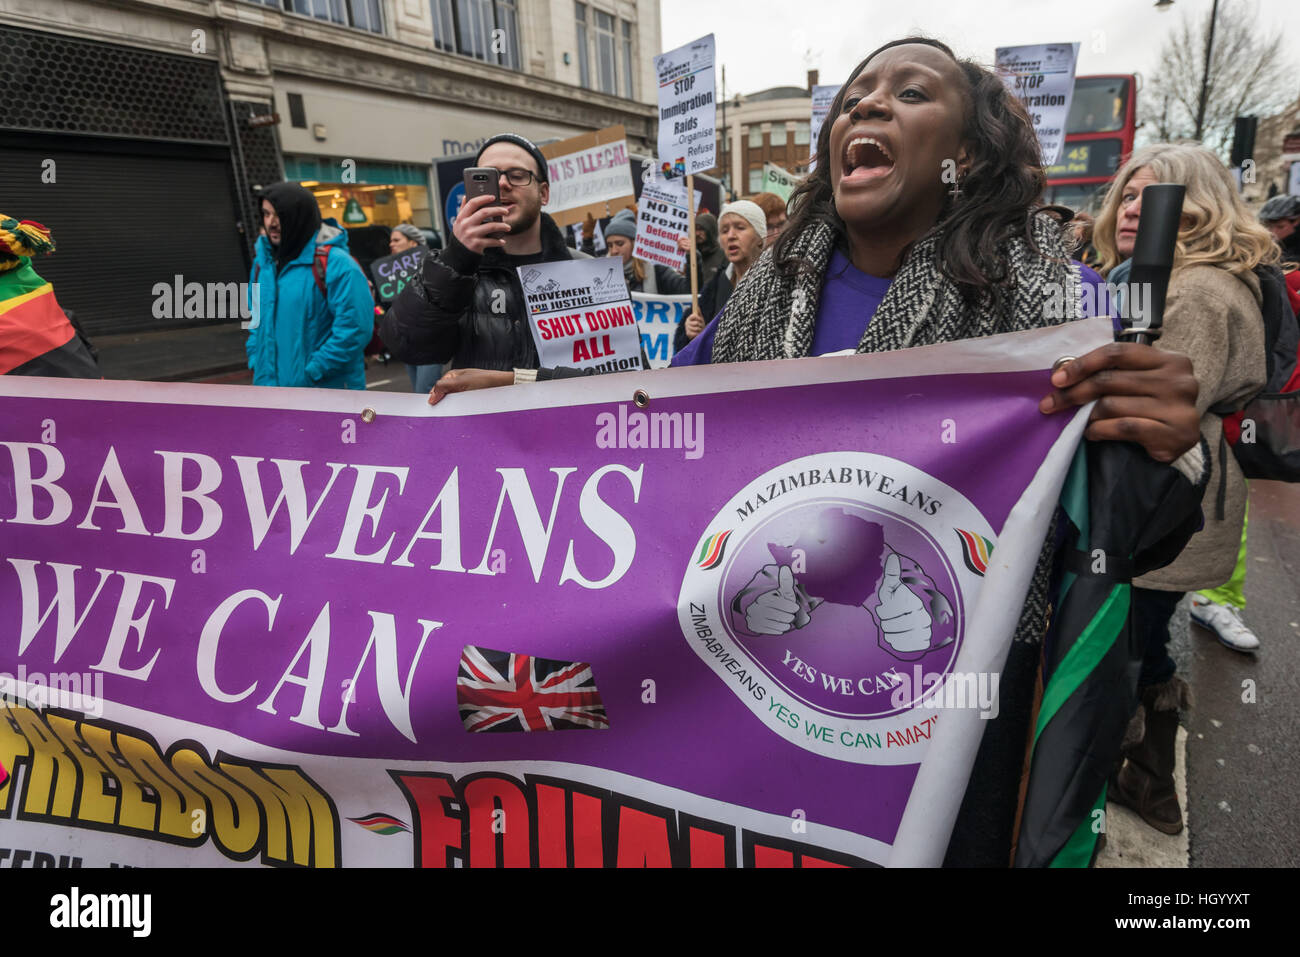 London, UK. 14th January 2017. Zimbabweans support the Movement for Justice march through Brixton communities against - Stock Image